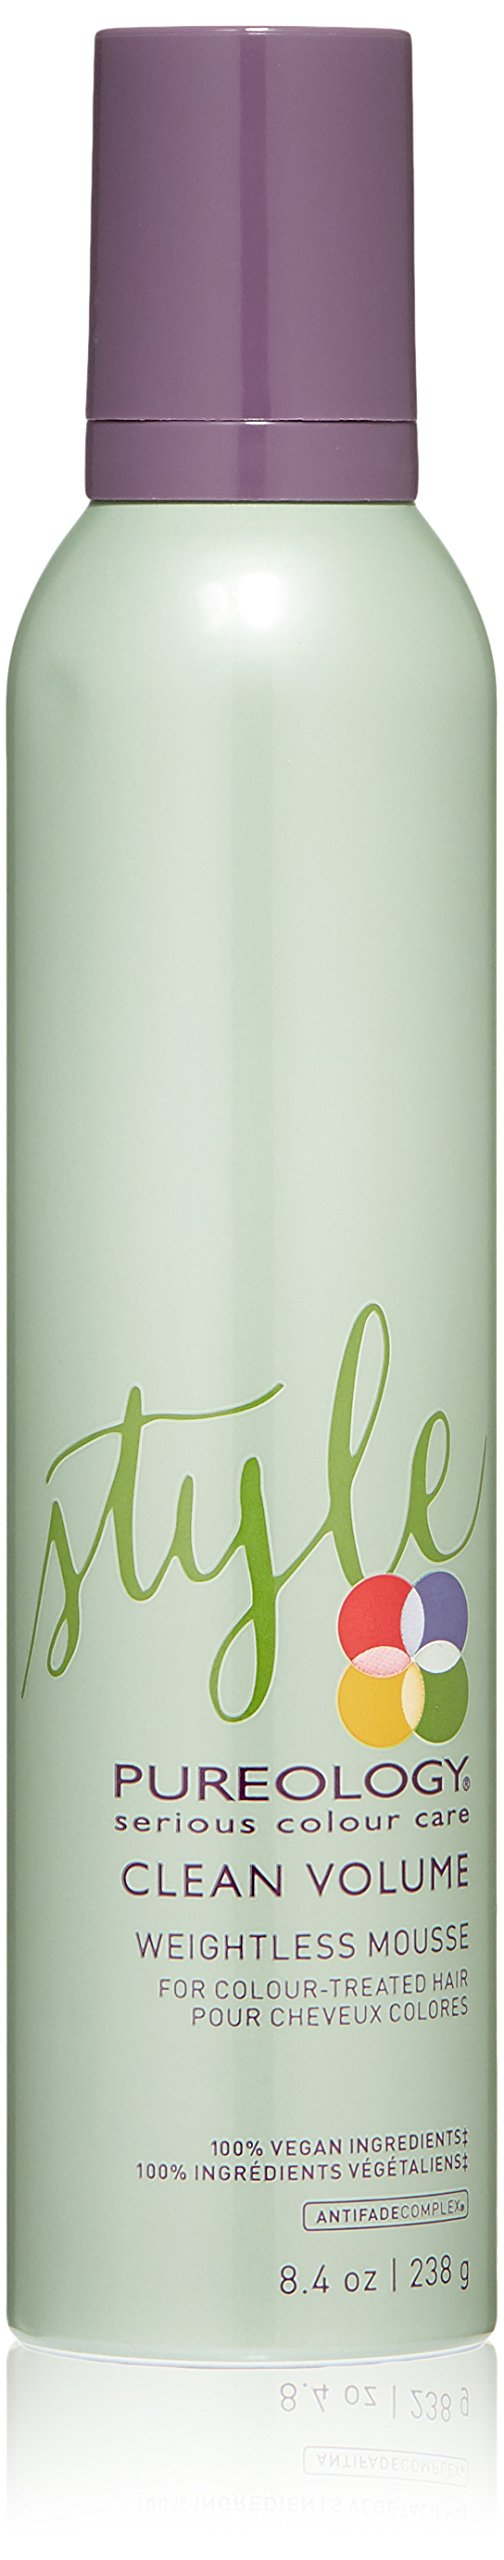 Pureology Clean Volume Weightless Mousse, 8.4 oz